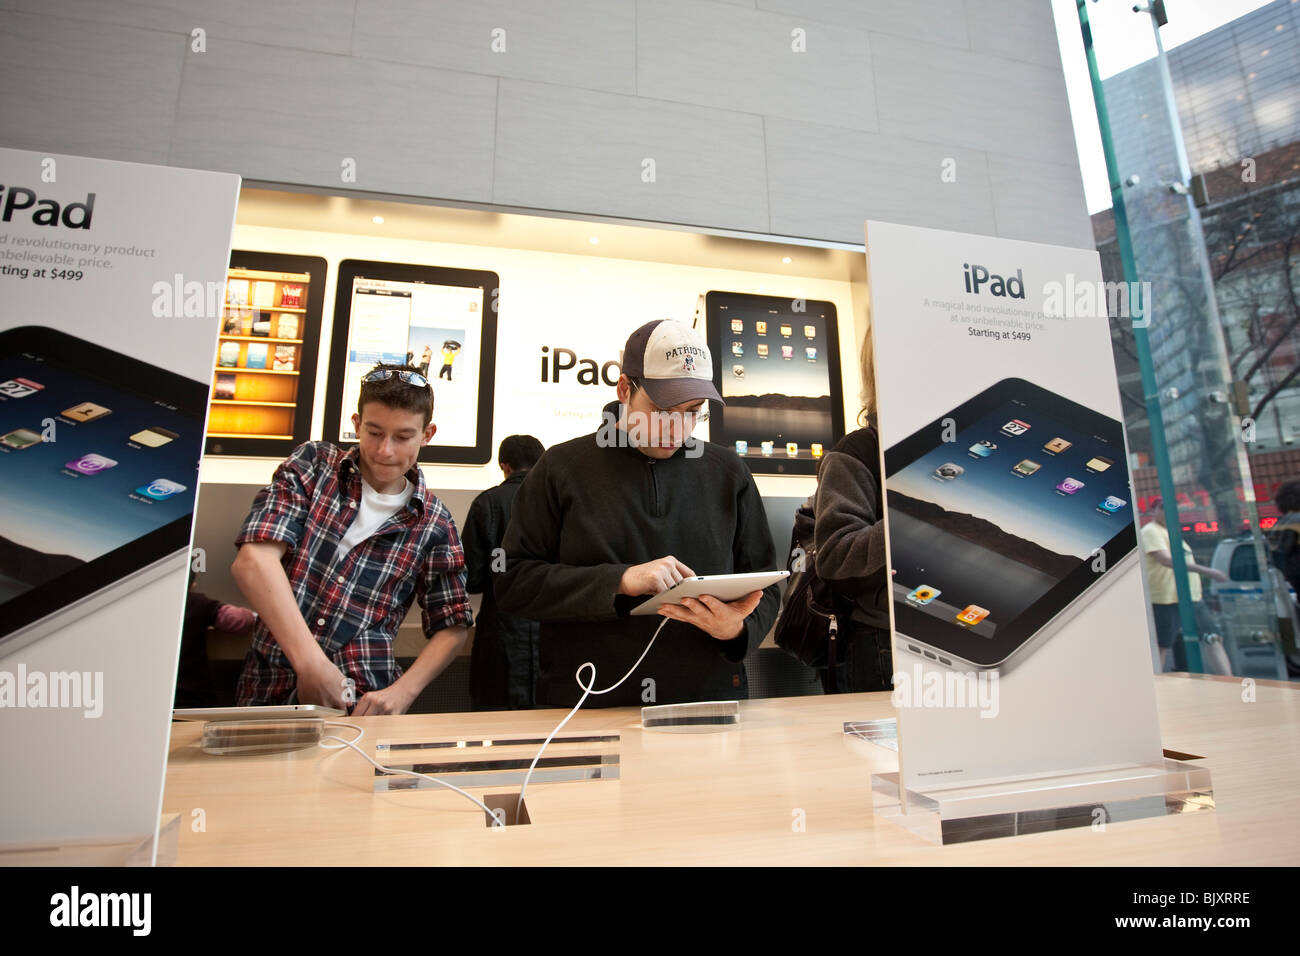 People try out the new iPad at the UWS Apple store in New York, USA, 3 April 2010. - Stock Image